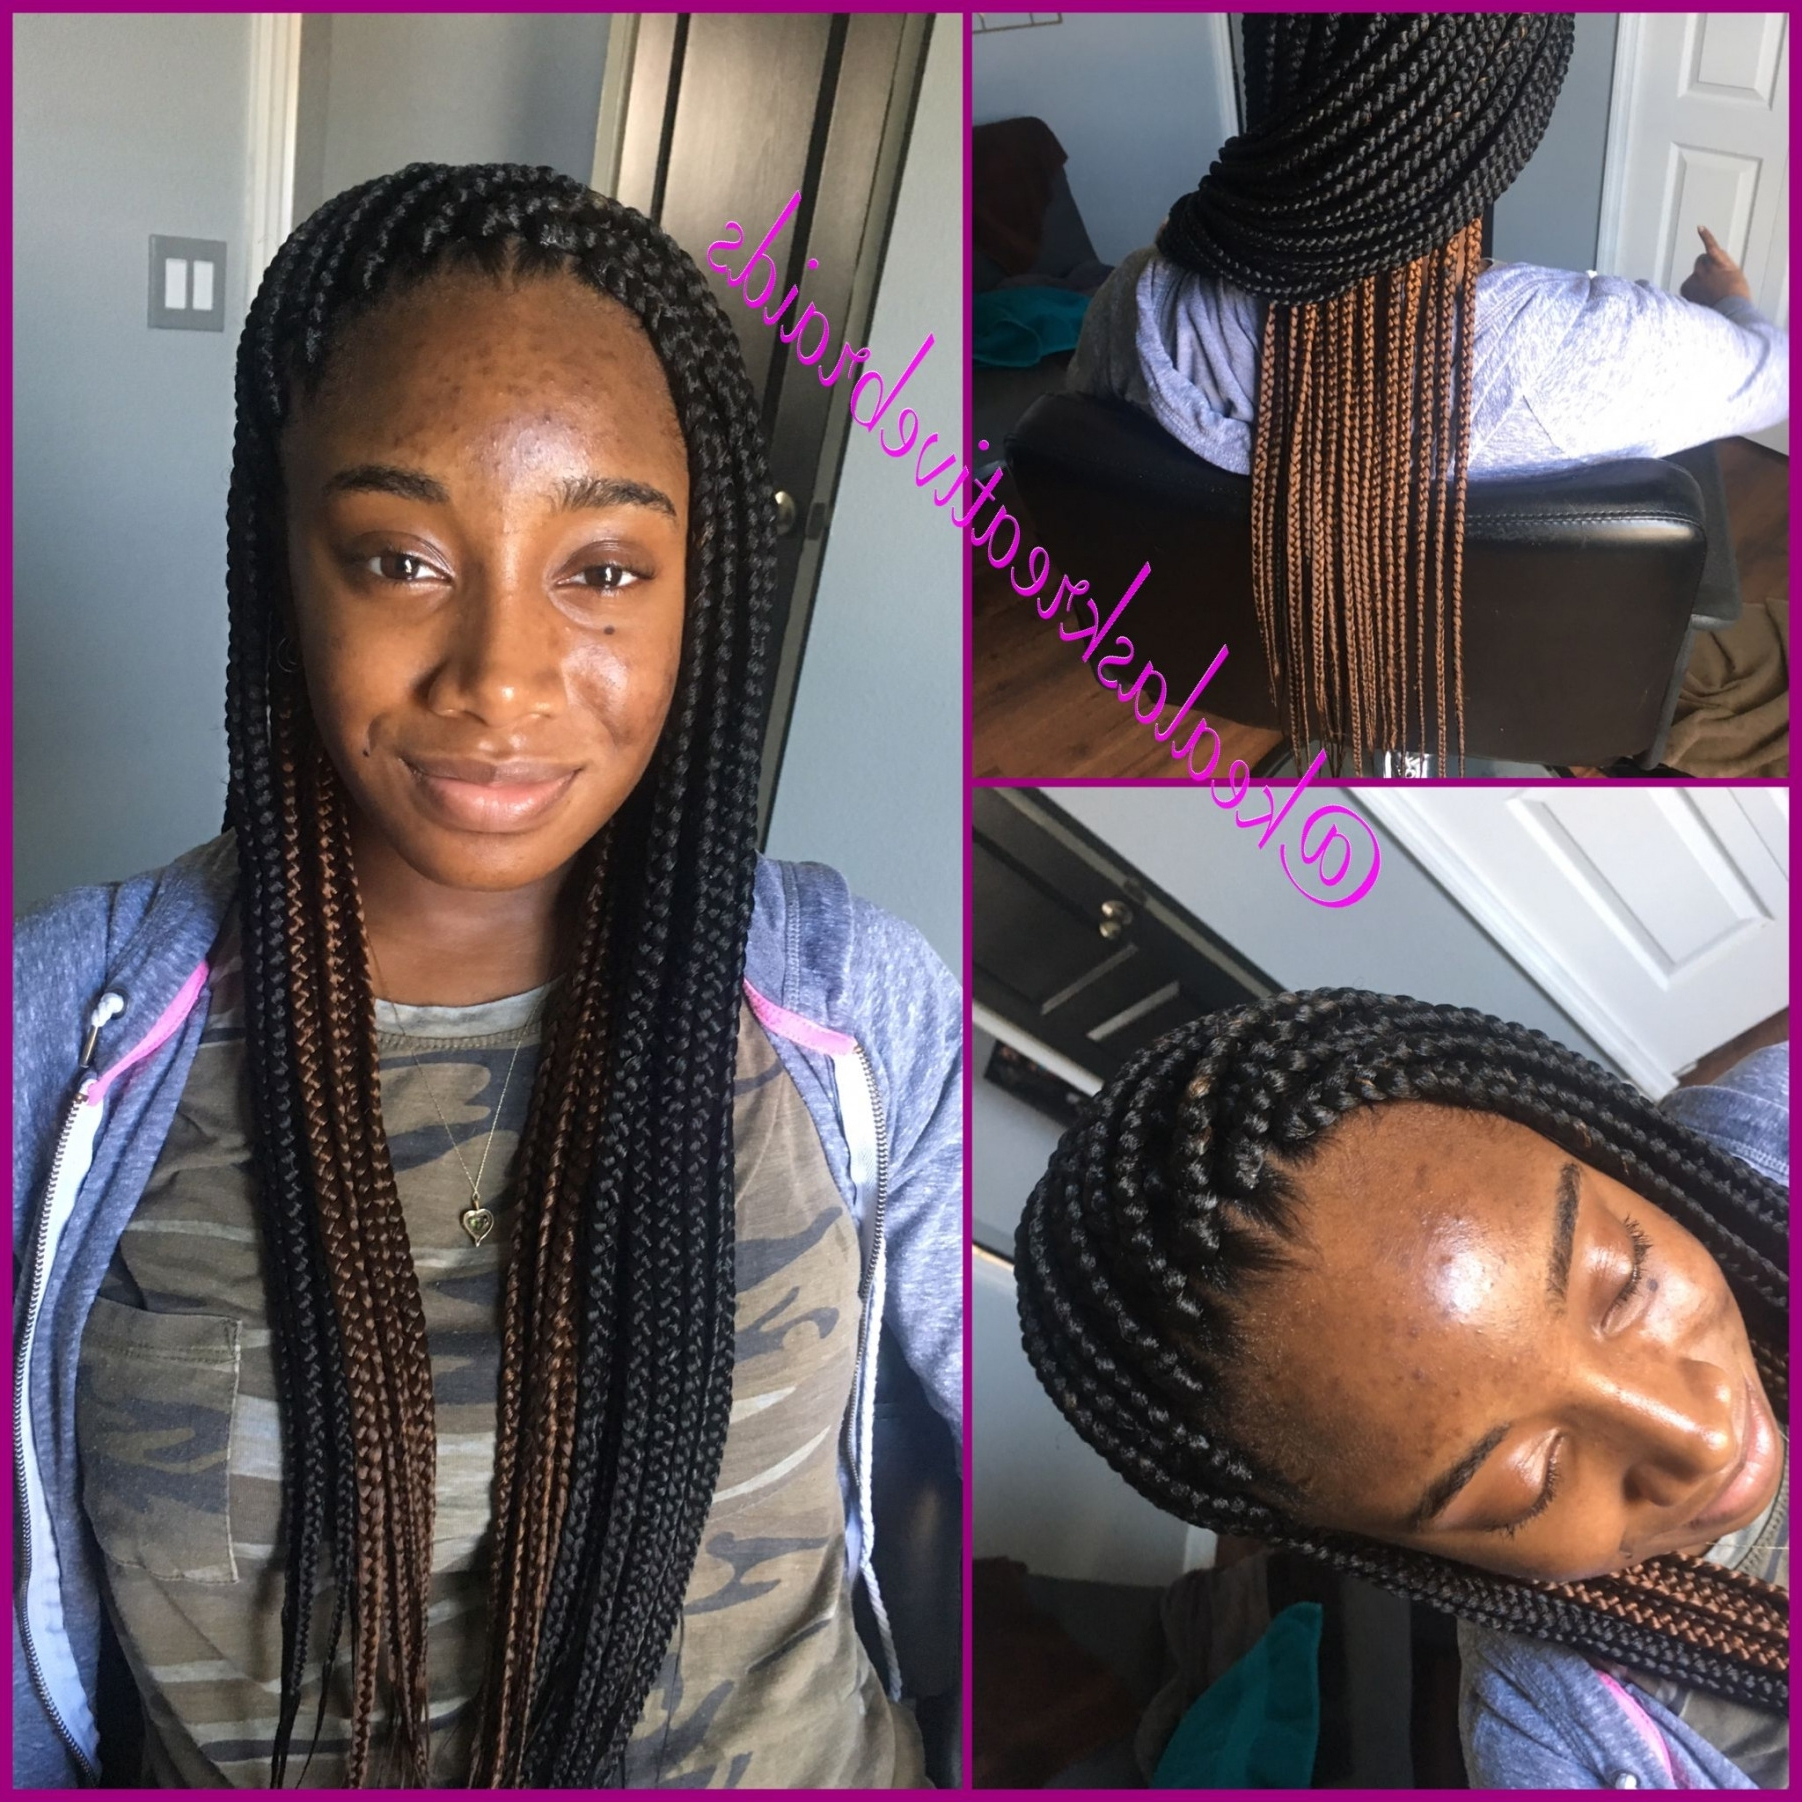 Poetic Justice Braids Hairstyles Inspirational Small Medium Box Within Best And Newest Poetic Justice Braids Hairstyles (View 10 of 15)